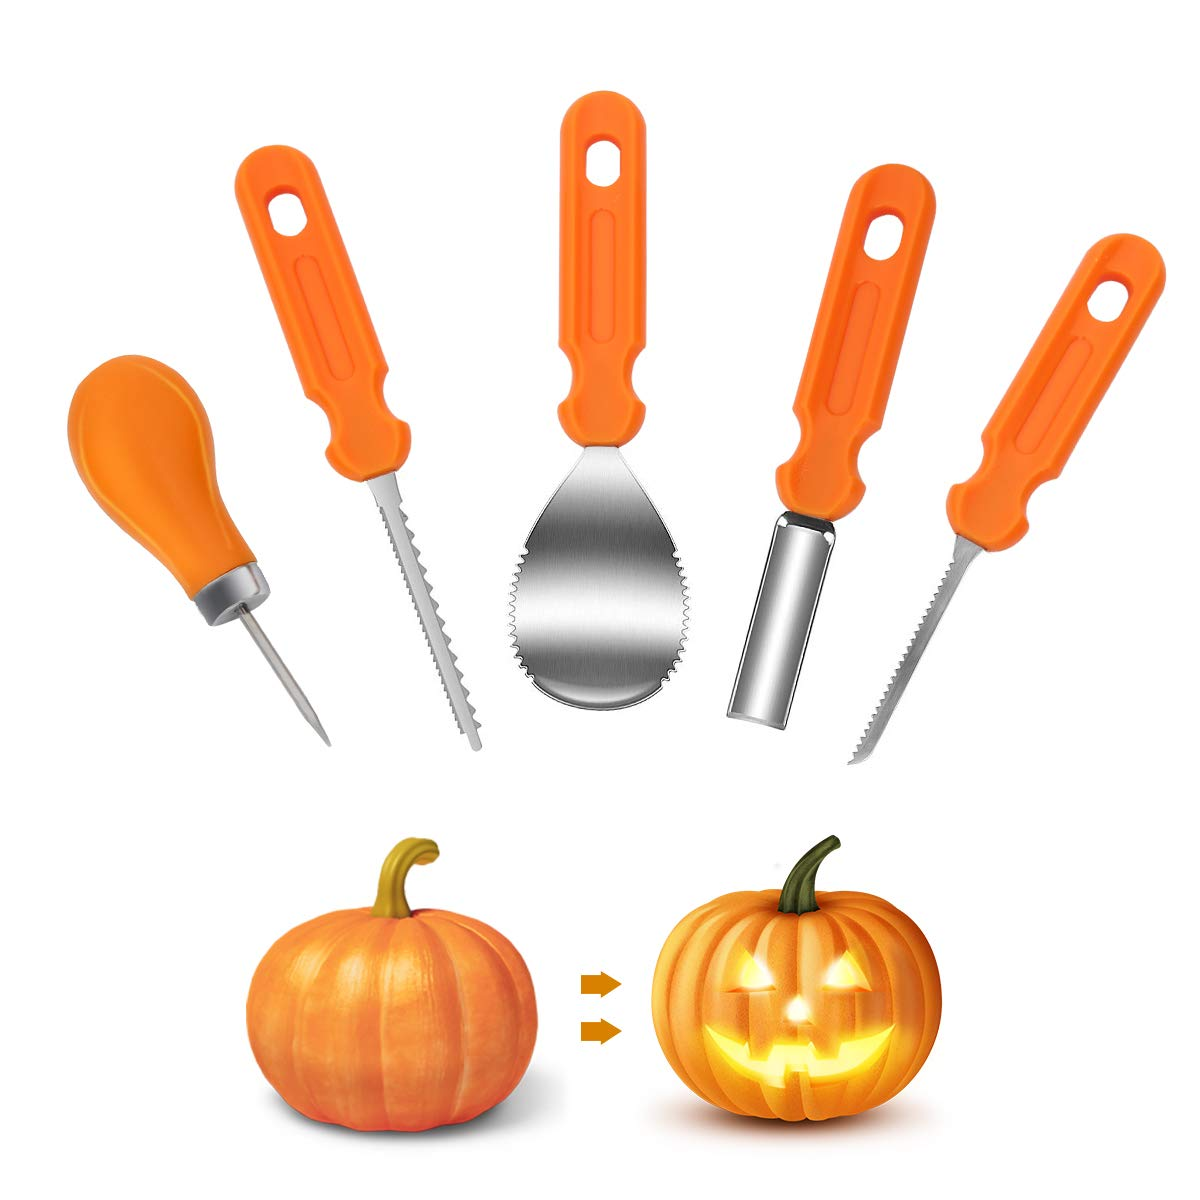 Pumpkin Carving Kit,5 Pieces Durable Stainless Steel Professional Pumpkin Carving Tools Set - Cuts, Scoops,Scrapers,Saws,Loops,Knives for Halloween Decoration Easily Sculpting Jack-O-Lanter (5) by HiFra